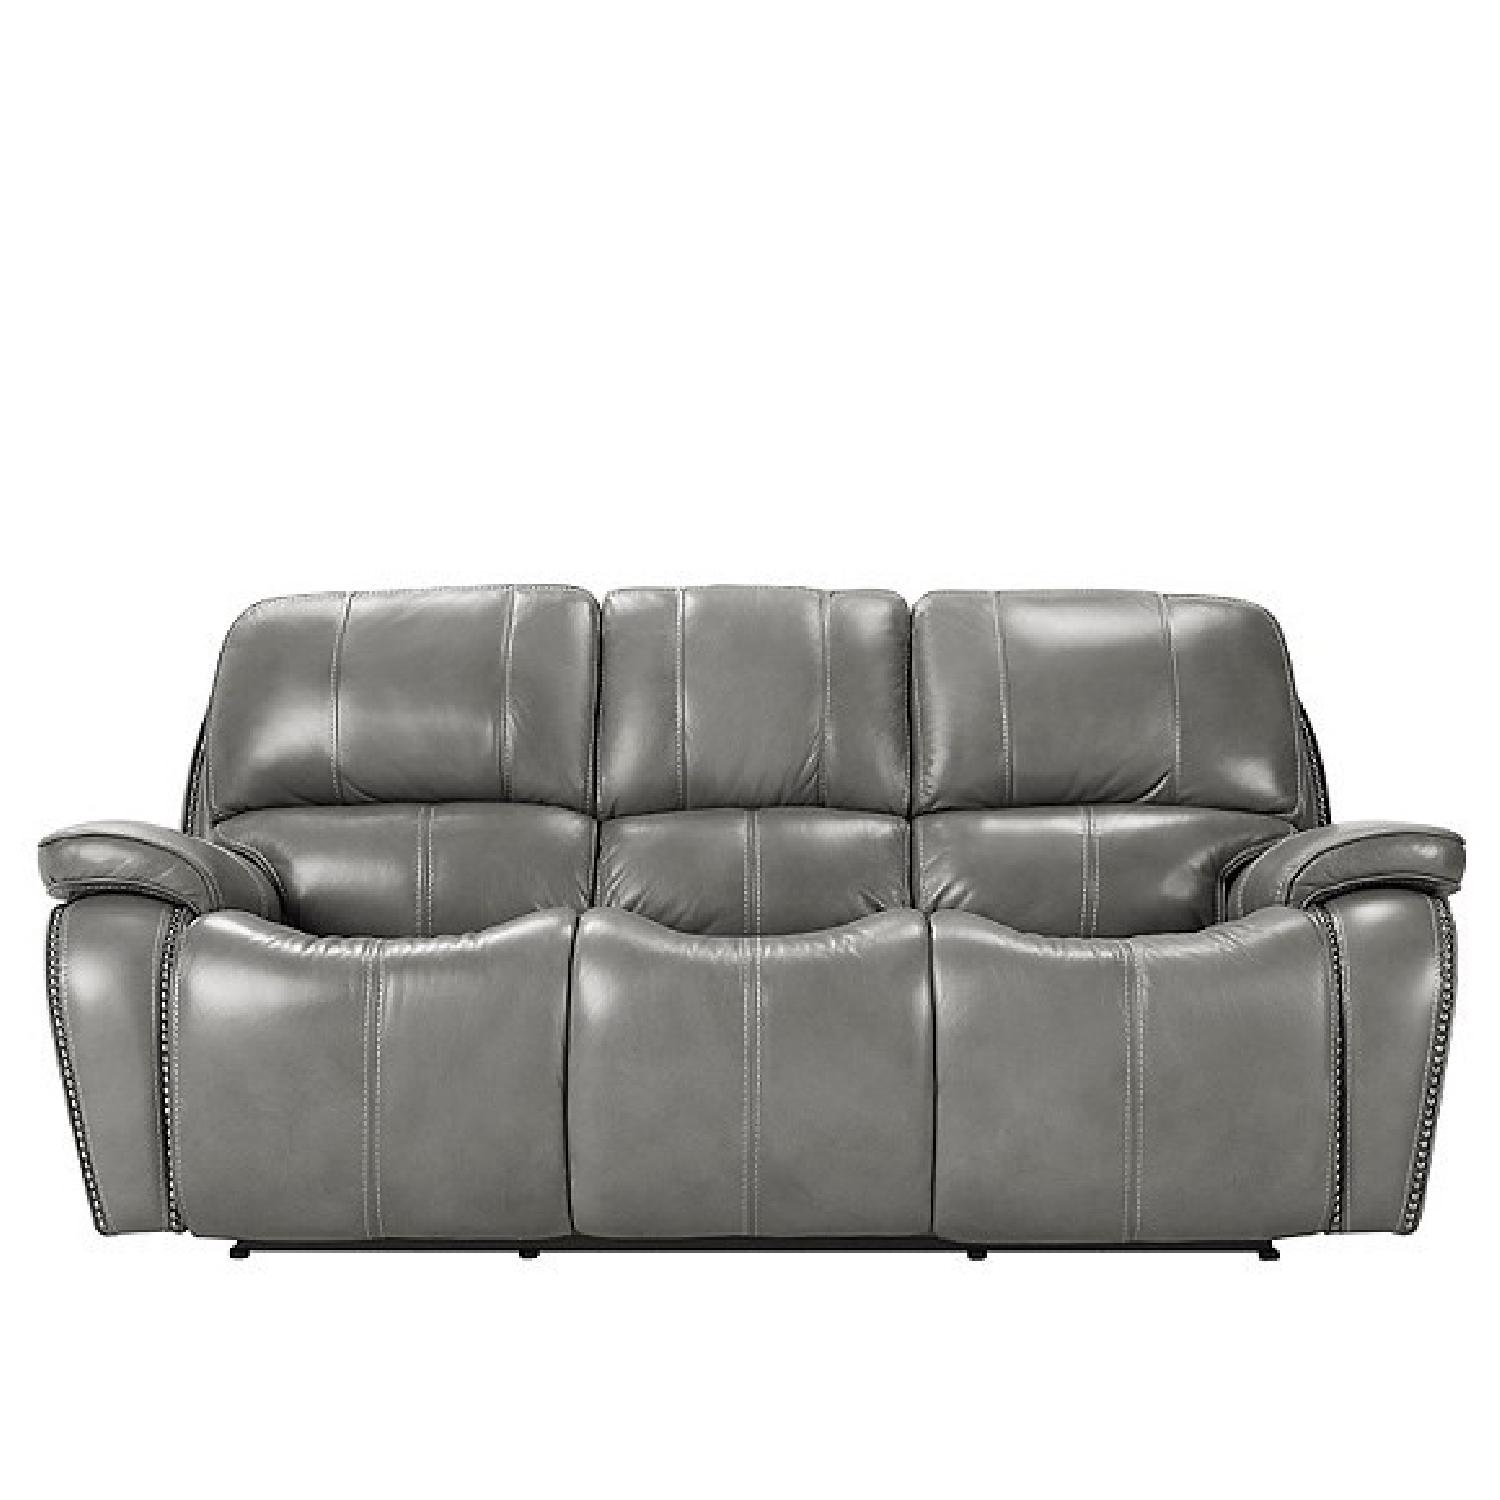 Raymour & Flanigan Leather Power Reclining Sofa + Recliner